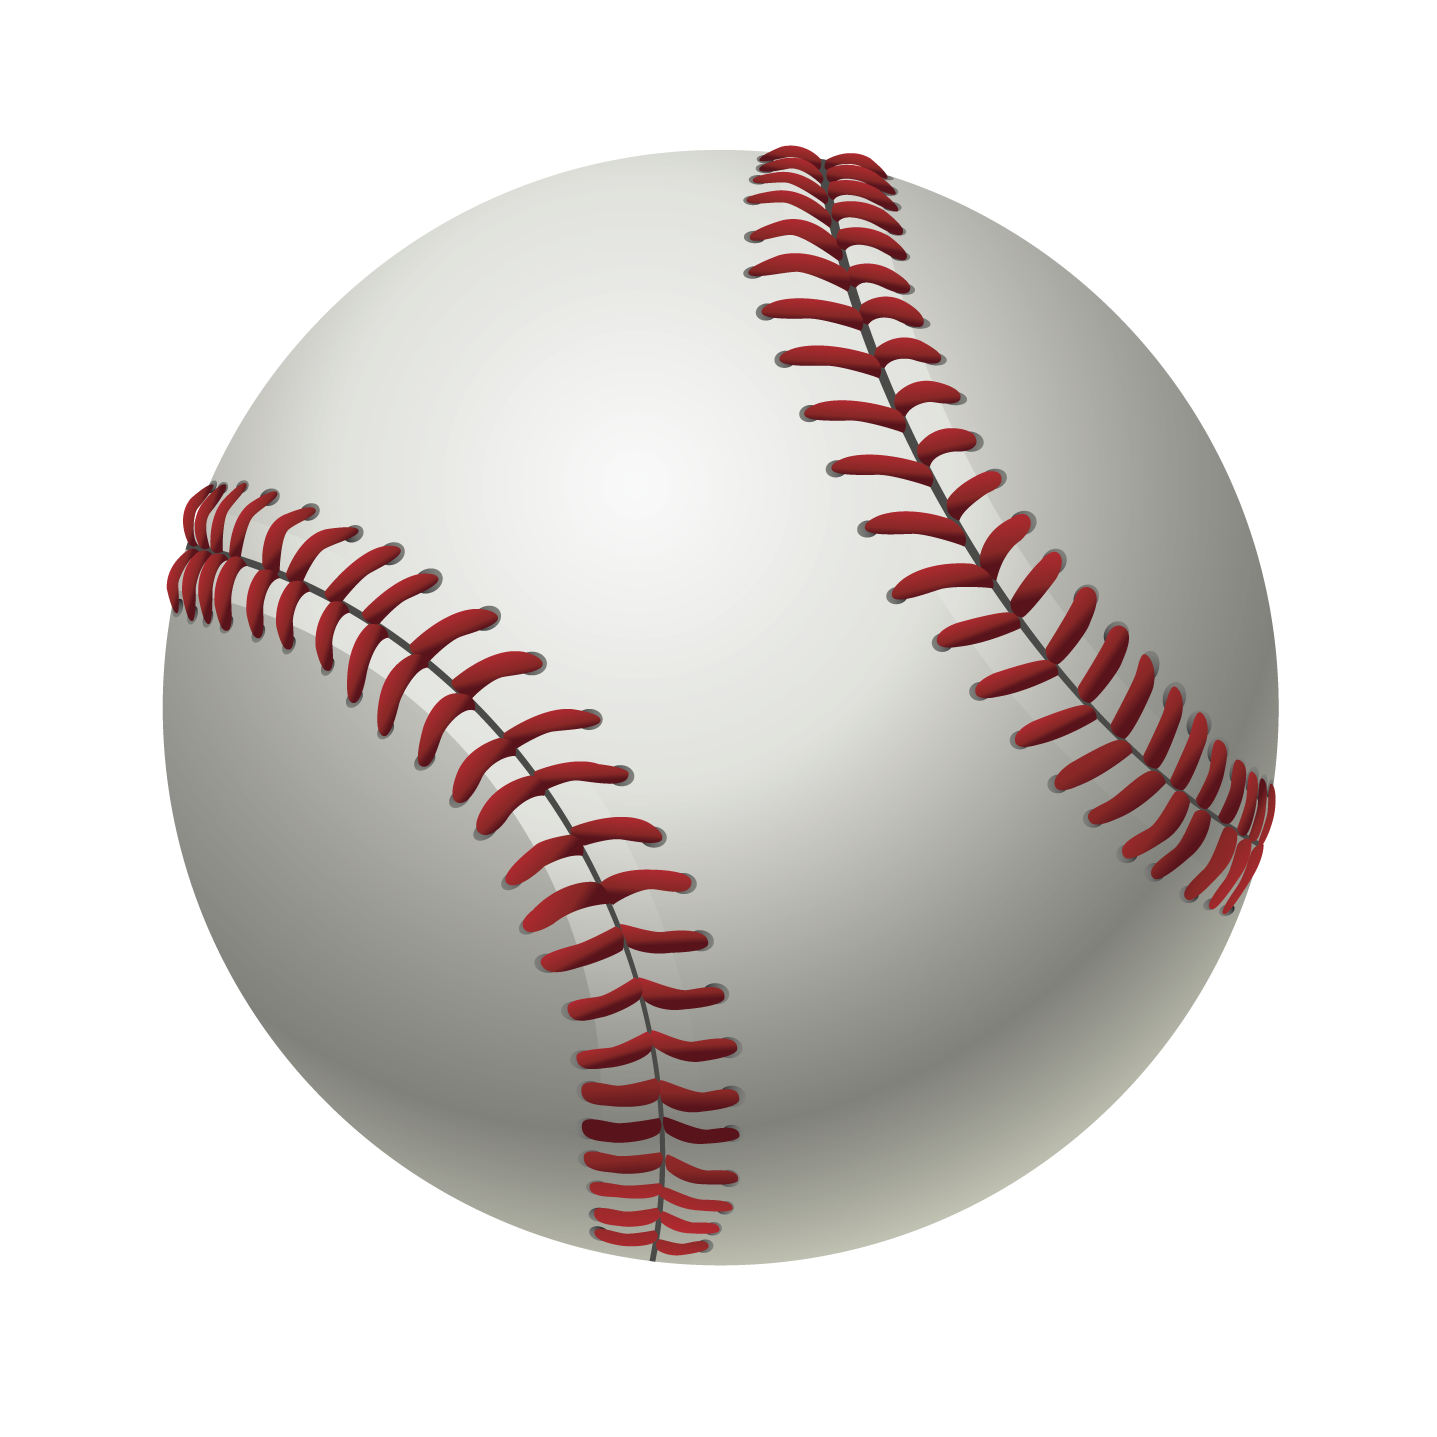 Baseball clipart background banner library download Baseball Icon Clipart | Web Icons PNG banner library download